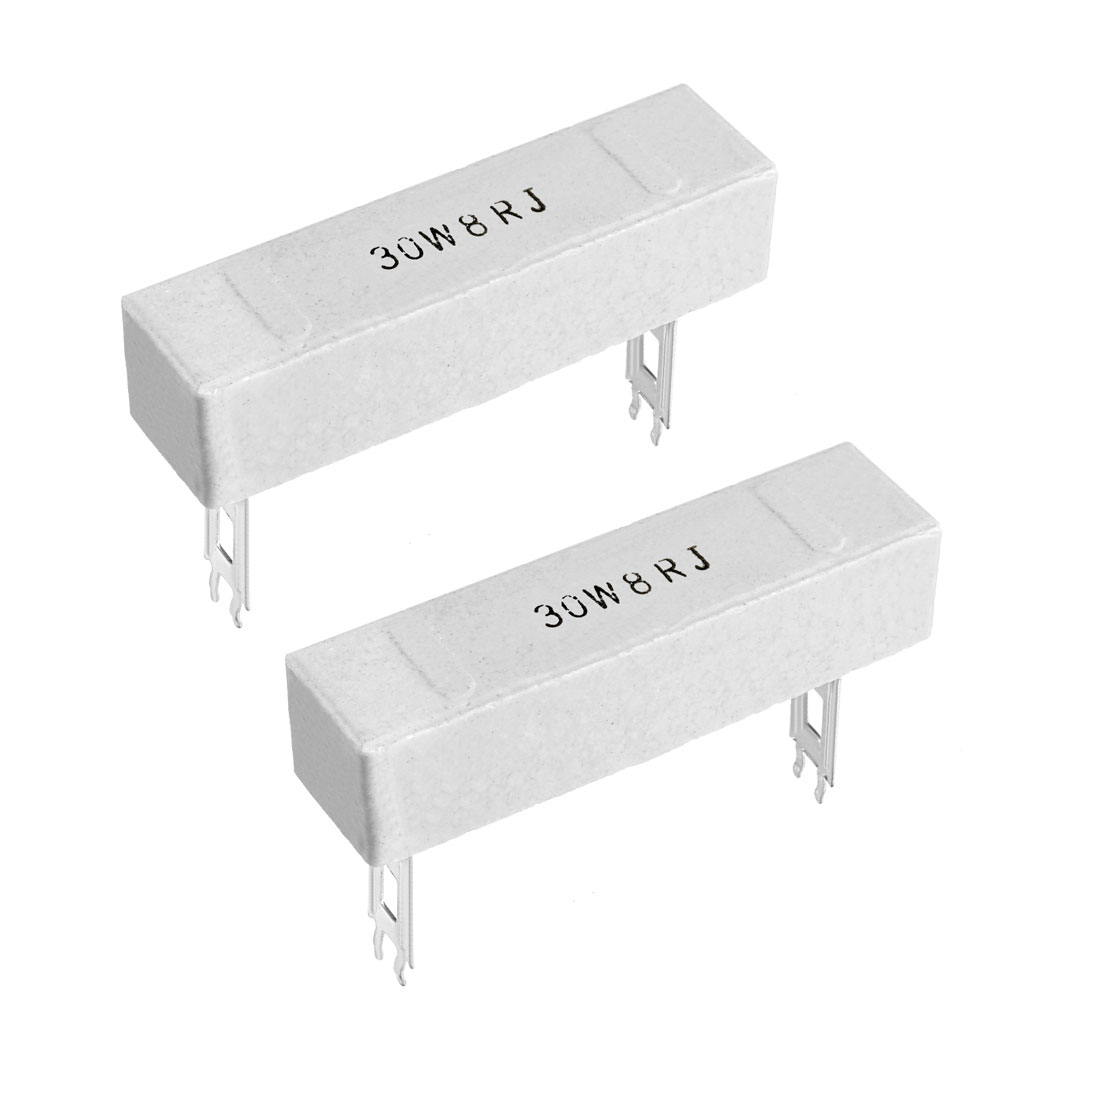 30W 8 Ohm Power Resistor Ceramic Cement Resistor Axial Lead White 2pcs